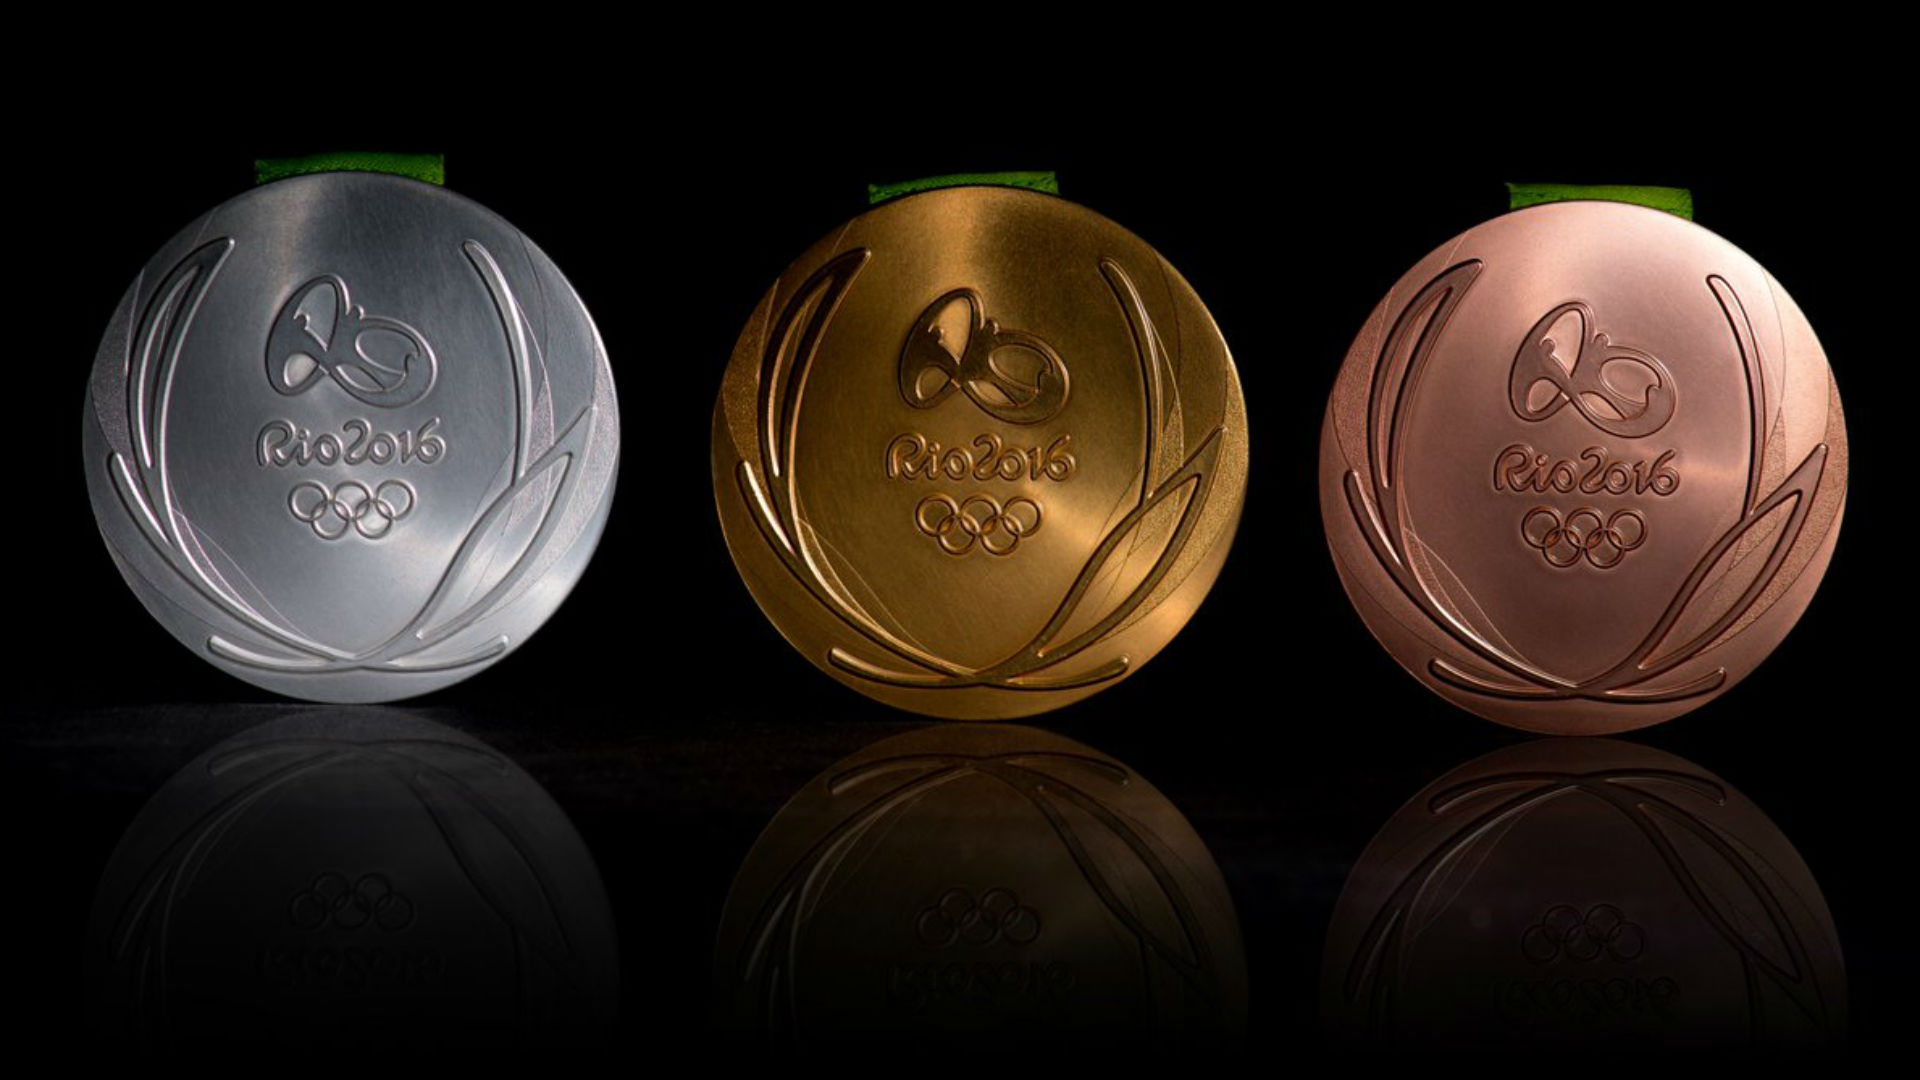 1920x1080 - Olympic Gold Metal Wallpapers 20